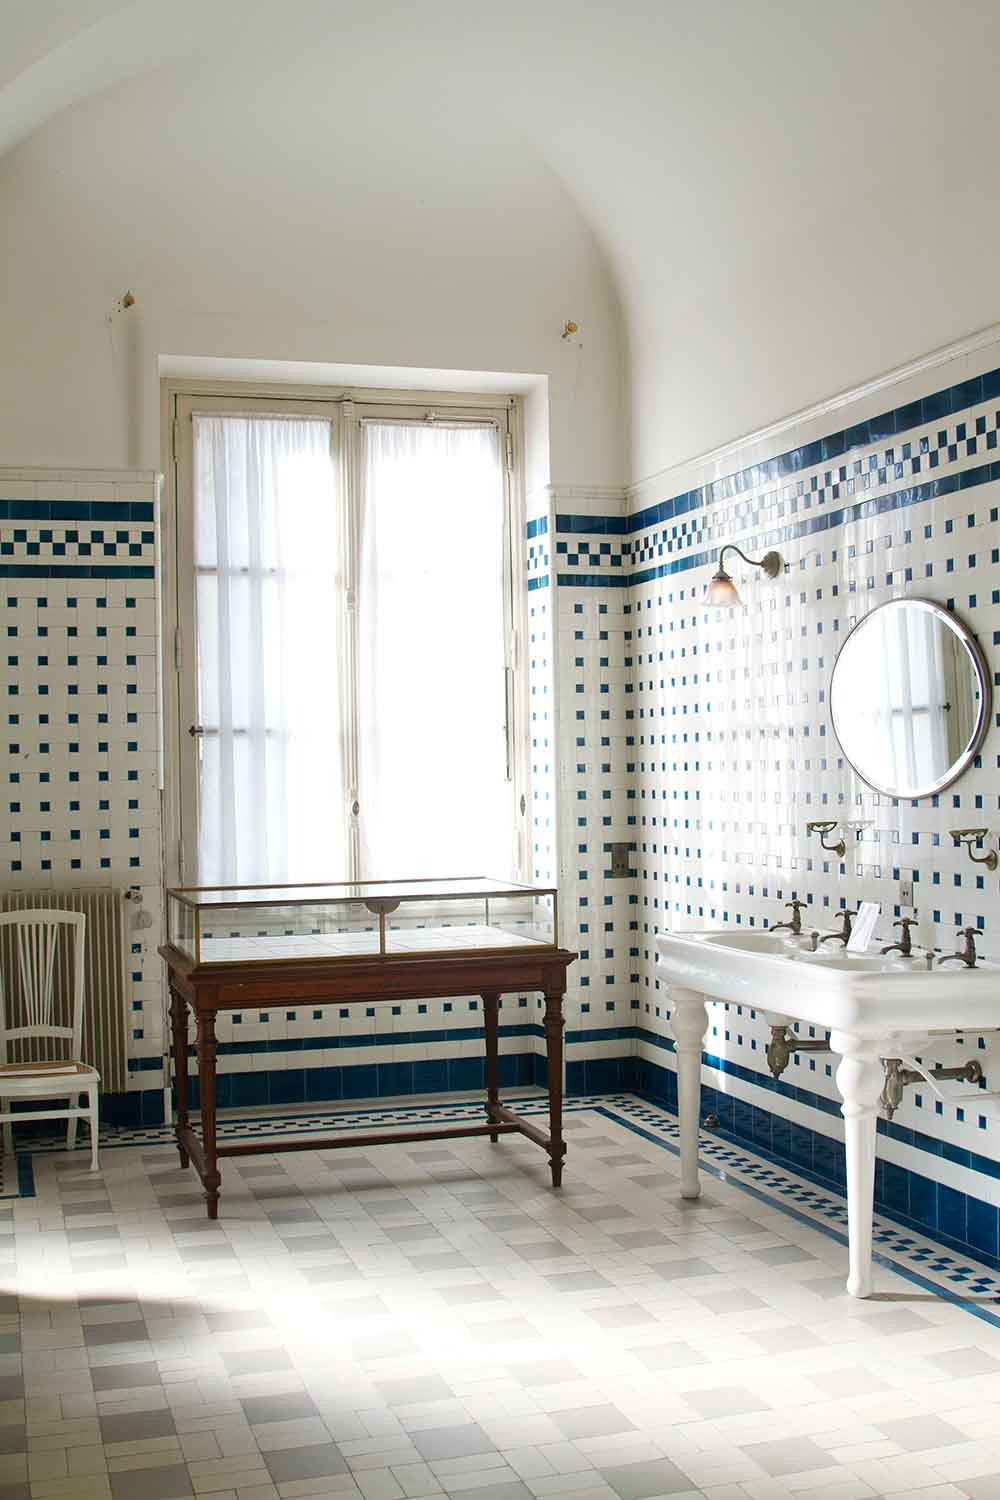 French bathroom inspiration in Paris